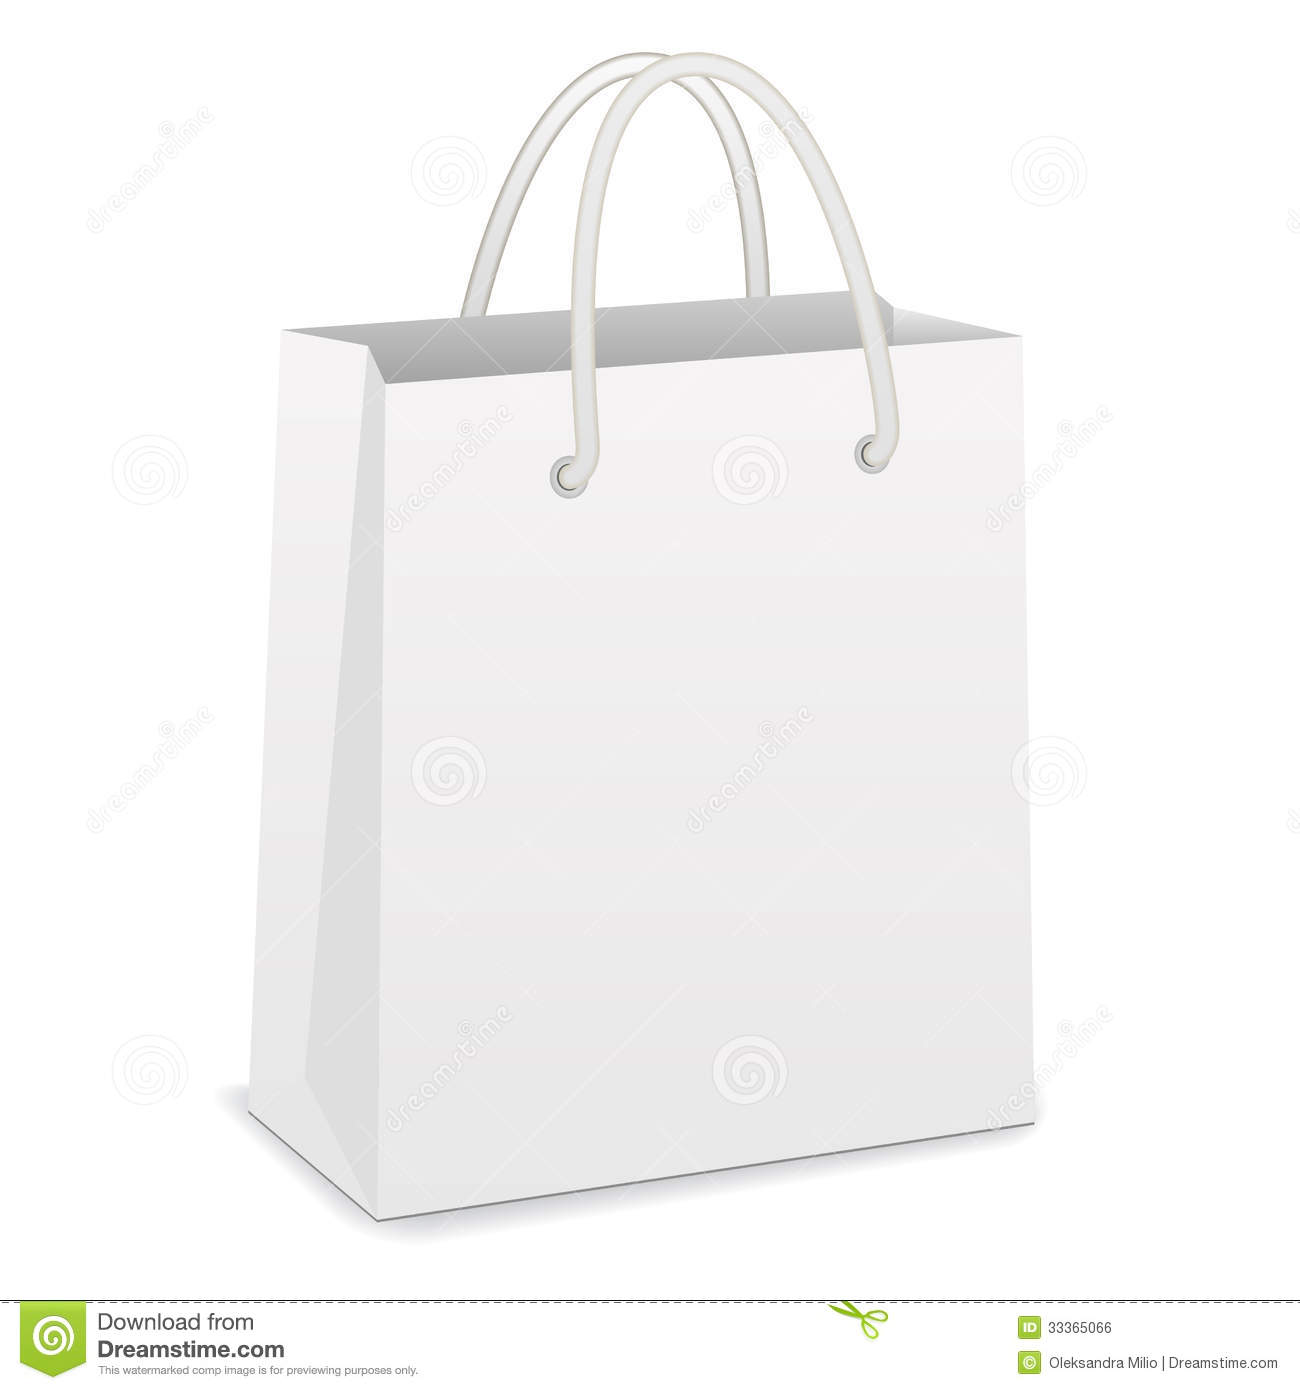 Shopping Bag Clipart Black And White Shopping Bags Clipart Black